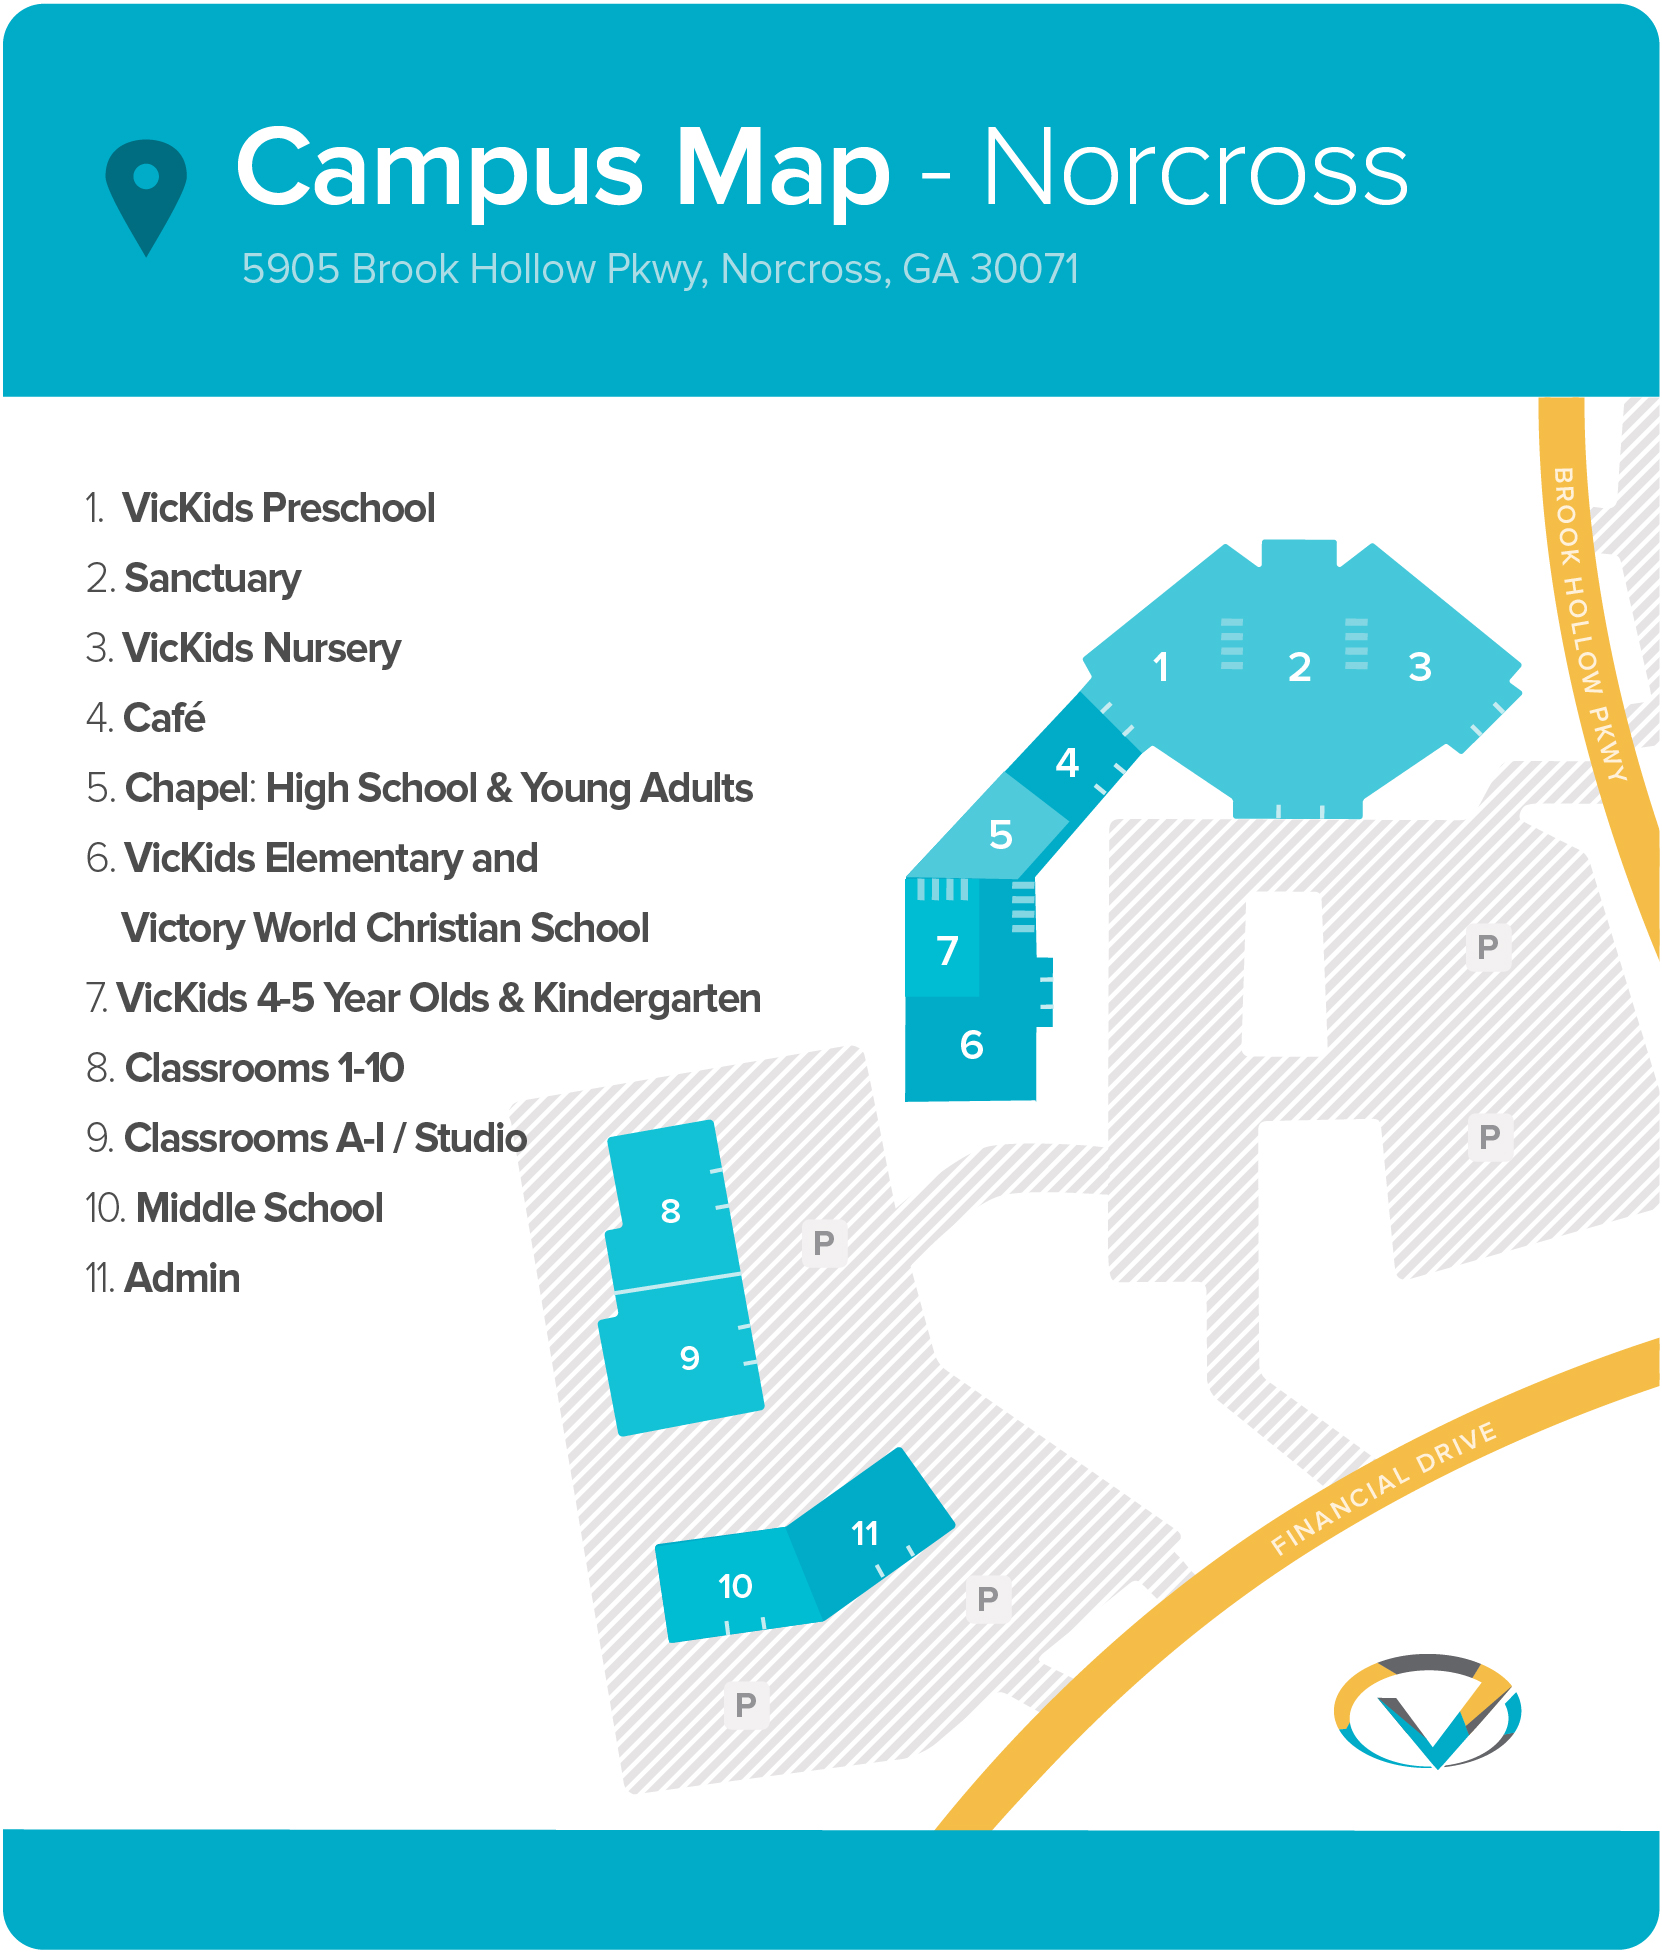 Campus Map - Norcross